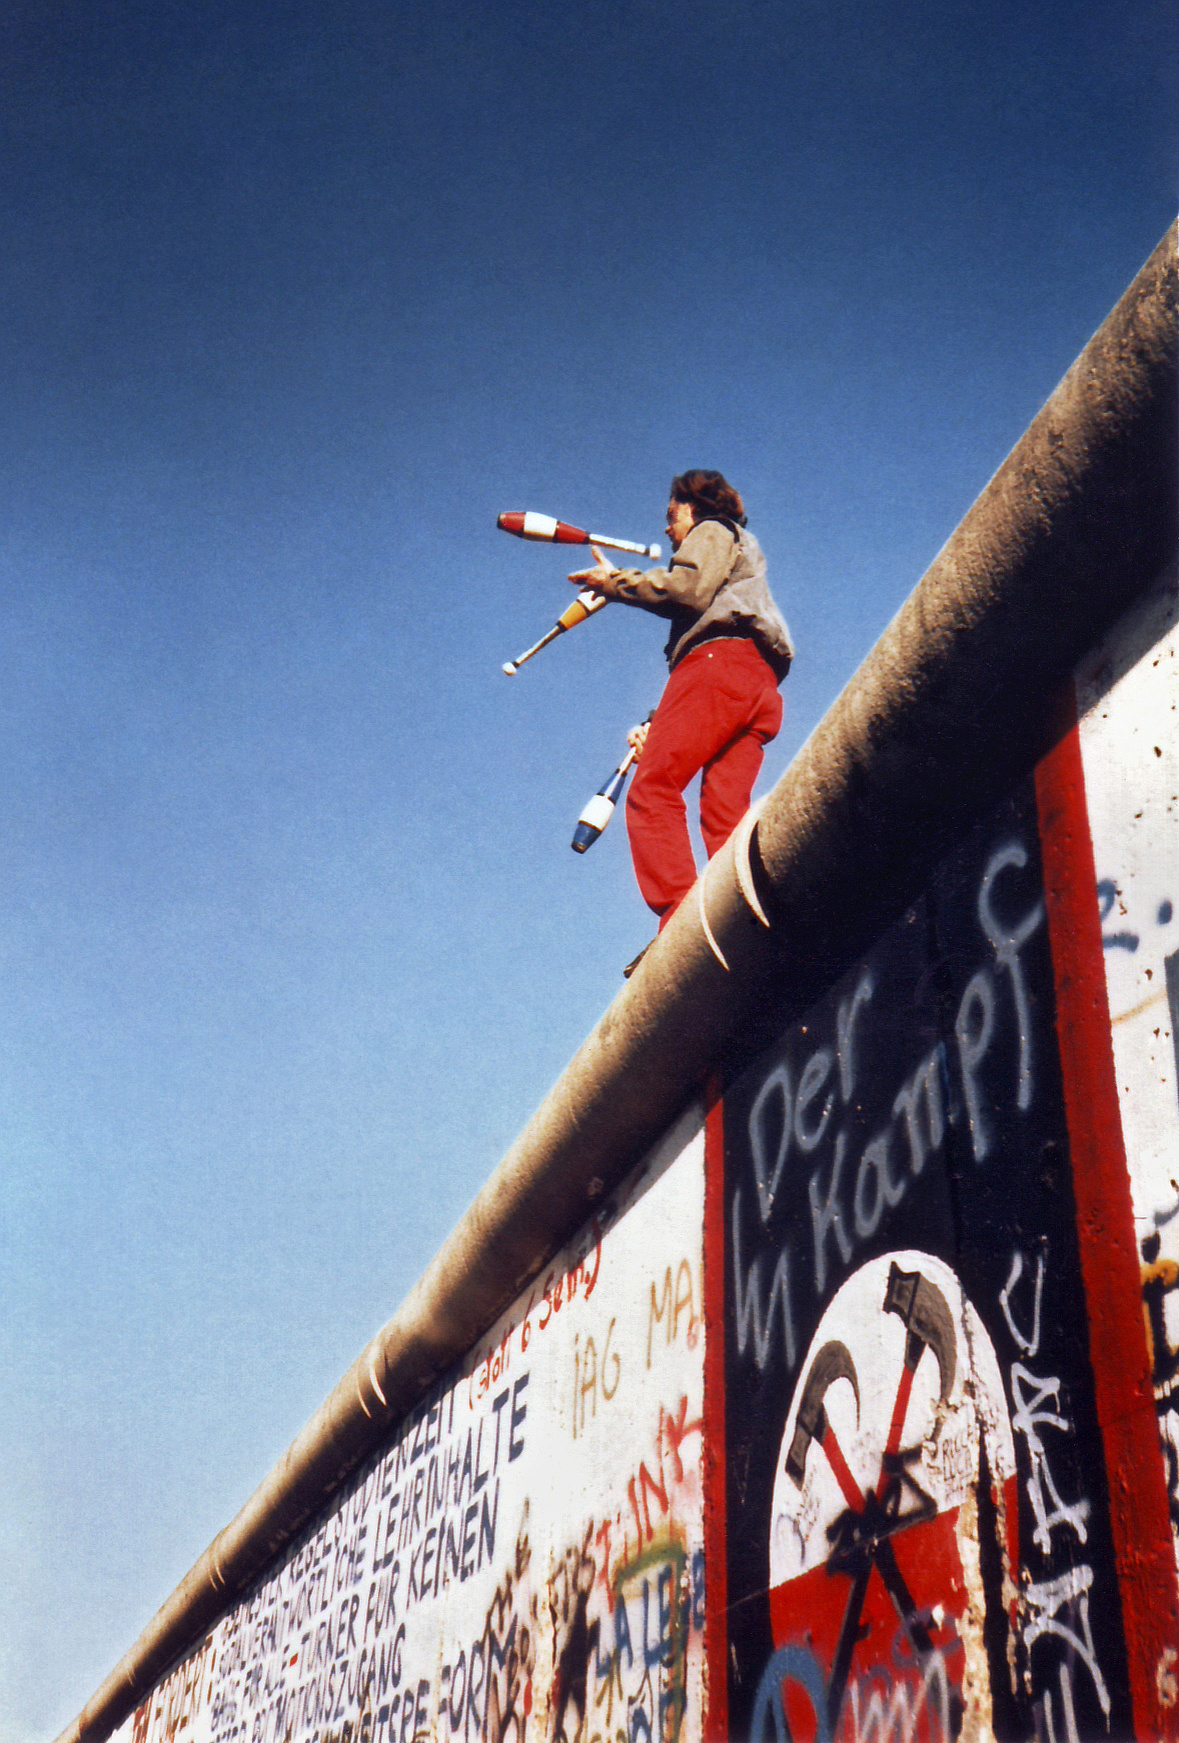 Juggling_on_the_Berlin_Wall_1a-125835.jpg